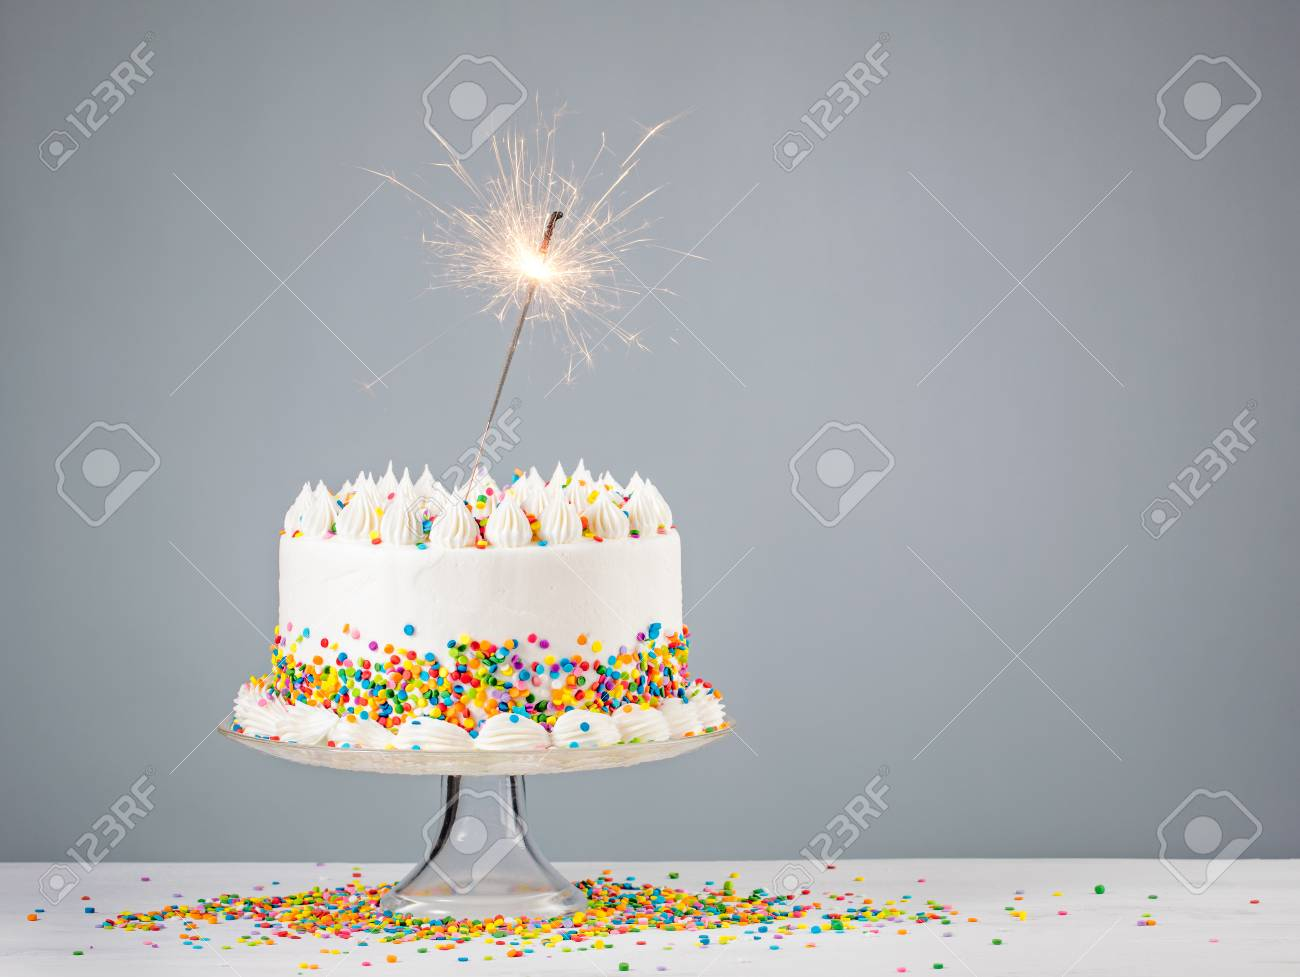 Surprising White Birthday Cake With Colorful Sprinkles And Sparkler Over Funny Birthday Cards Online Alyptdamsfinfo